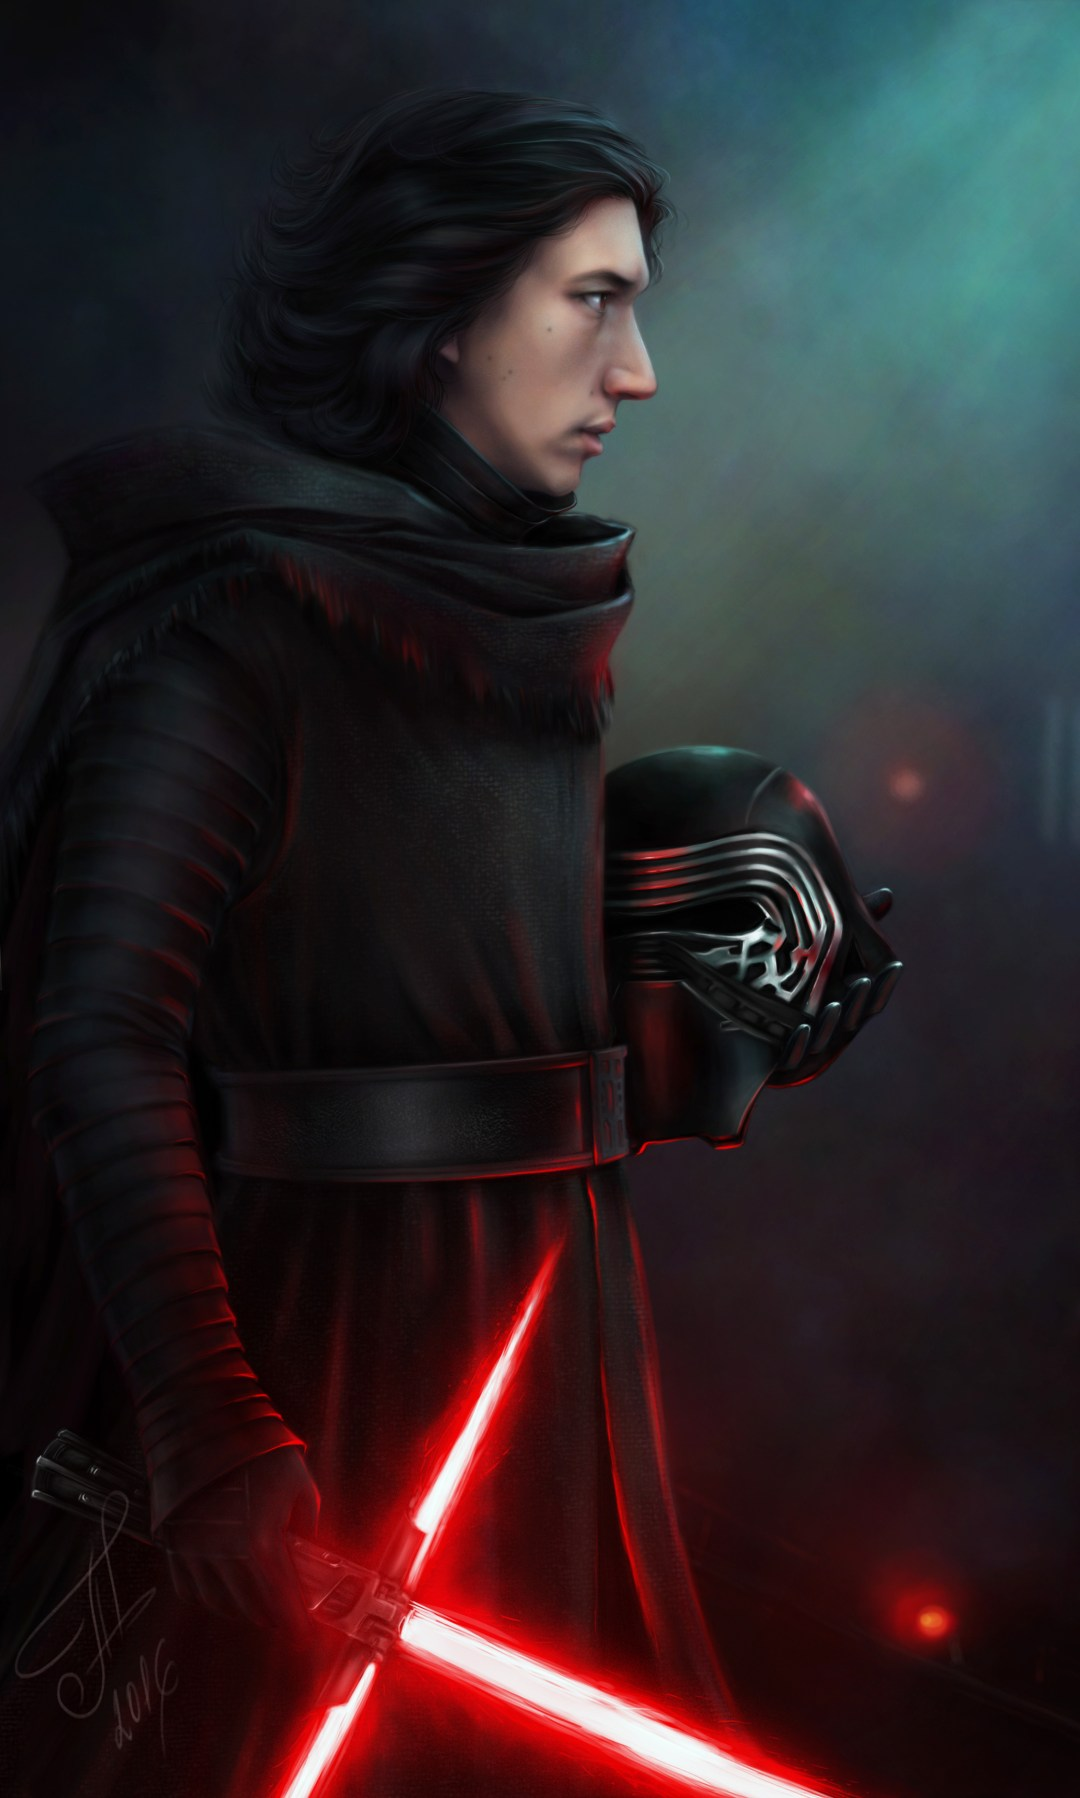 Kylo Ren from Star Wars: The Force Awakens by Kera